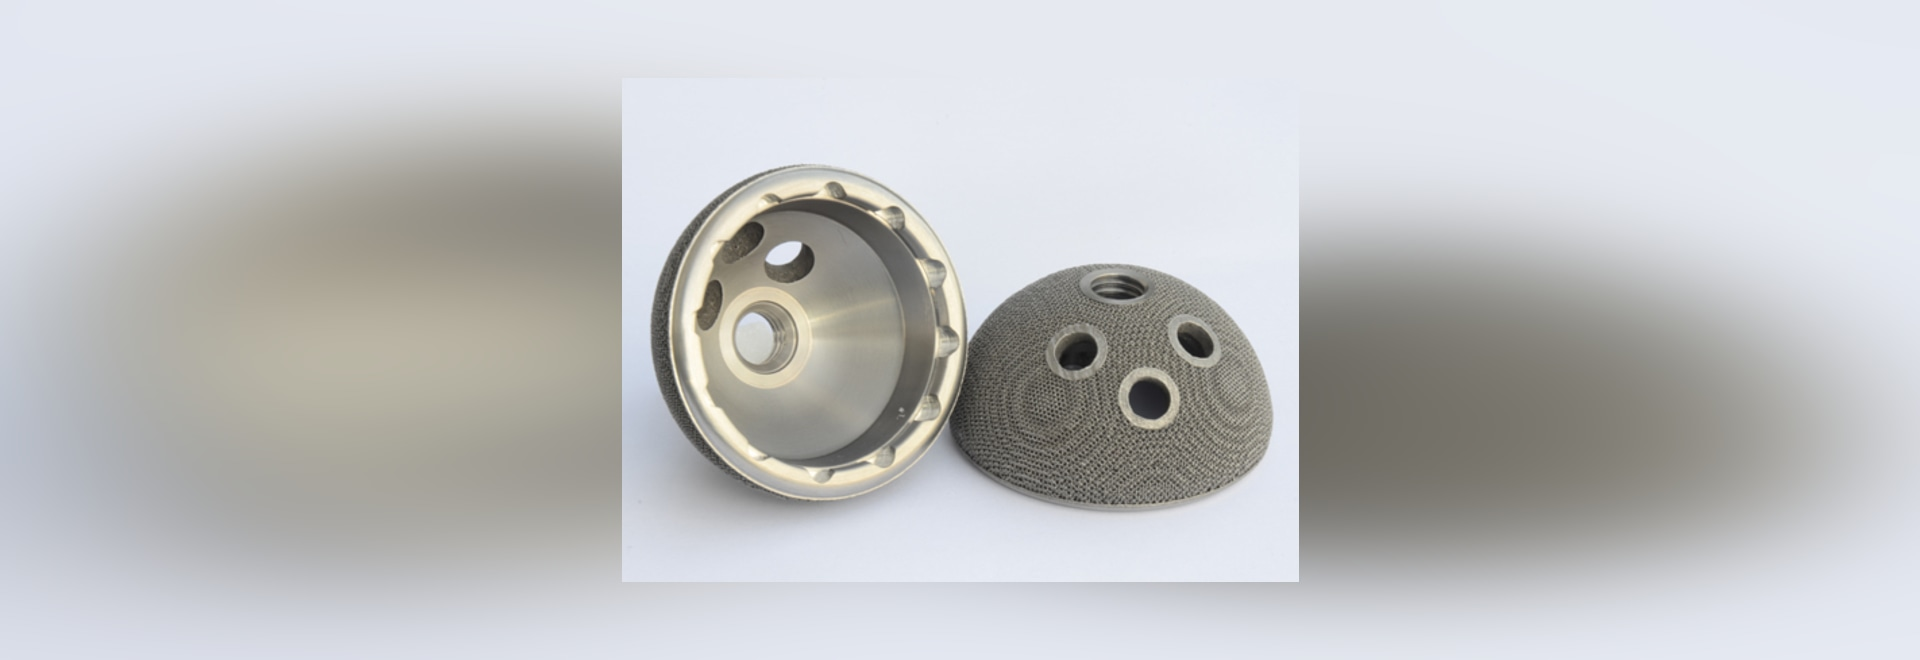 An orthopedic implant created using direct metal 3-D printing.